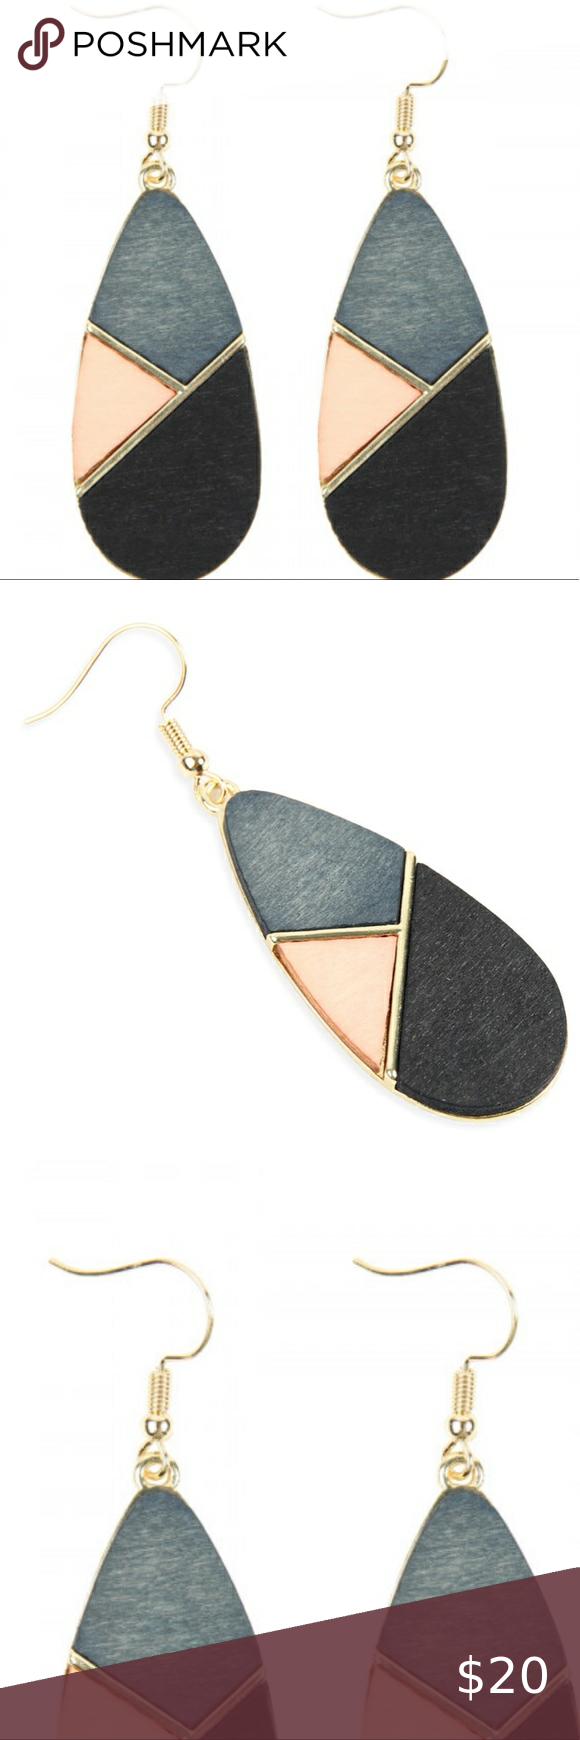 Nwt Geometric Teardrop Chic Color Block Earrings In 2020 Things To Sell Clothes Design Fashion Tips